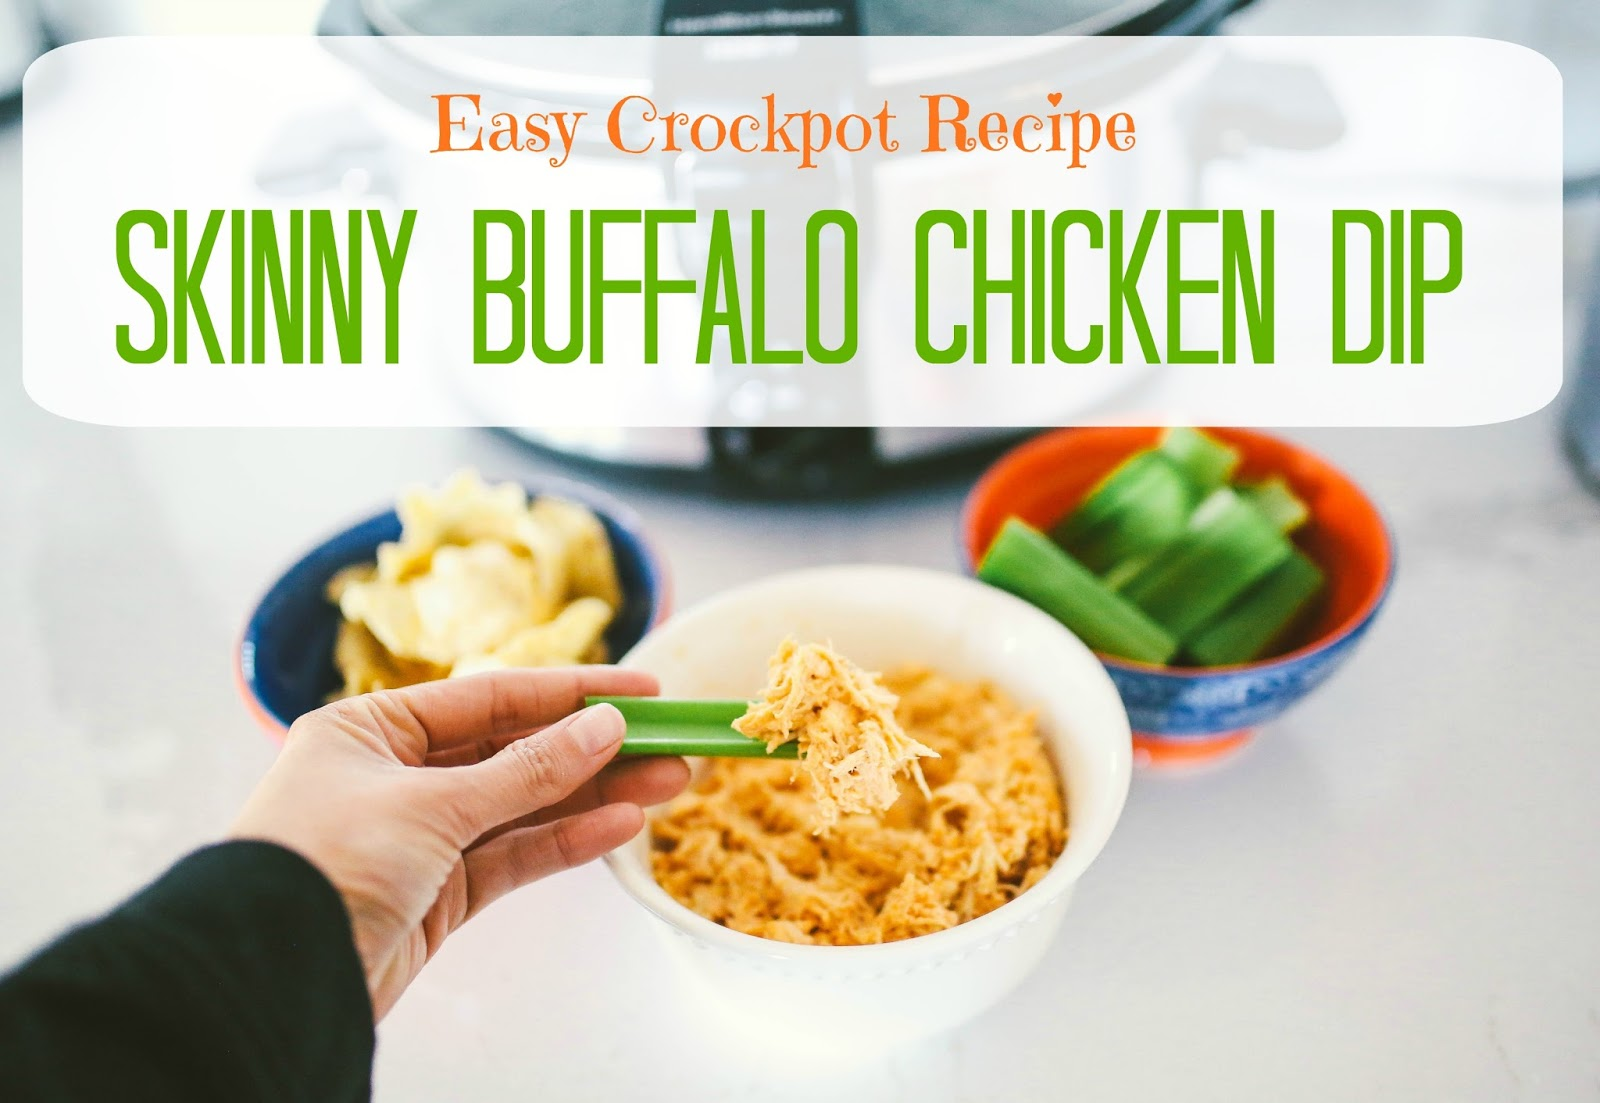 emily gemma, the sweetest thing blog, skinny buffalo chicken dip, low calorie buffalo chicken dip, spicy chicken dip crockpot recipe, easy crockpot recipe chicken dip low calorie,